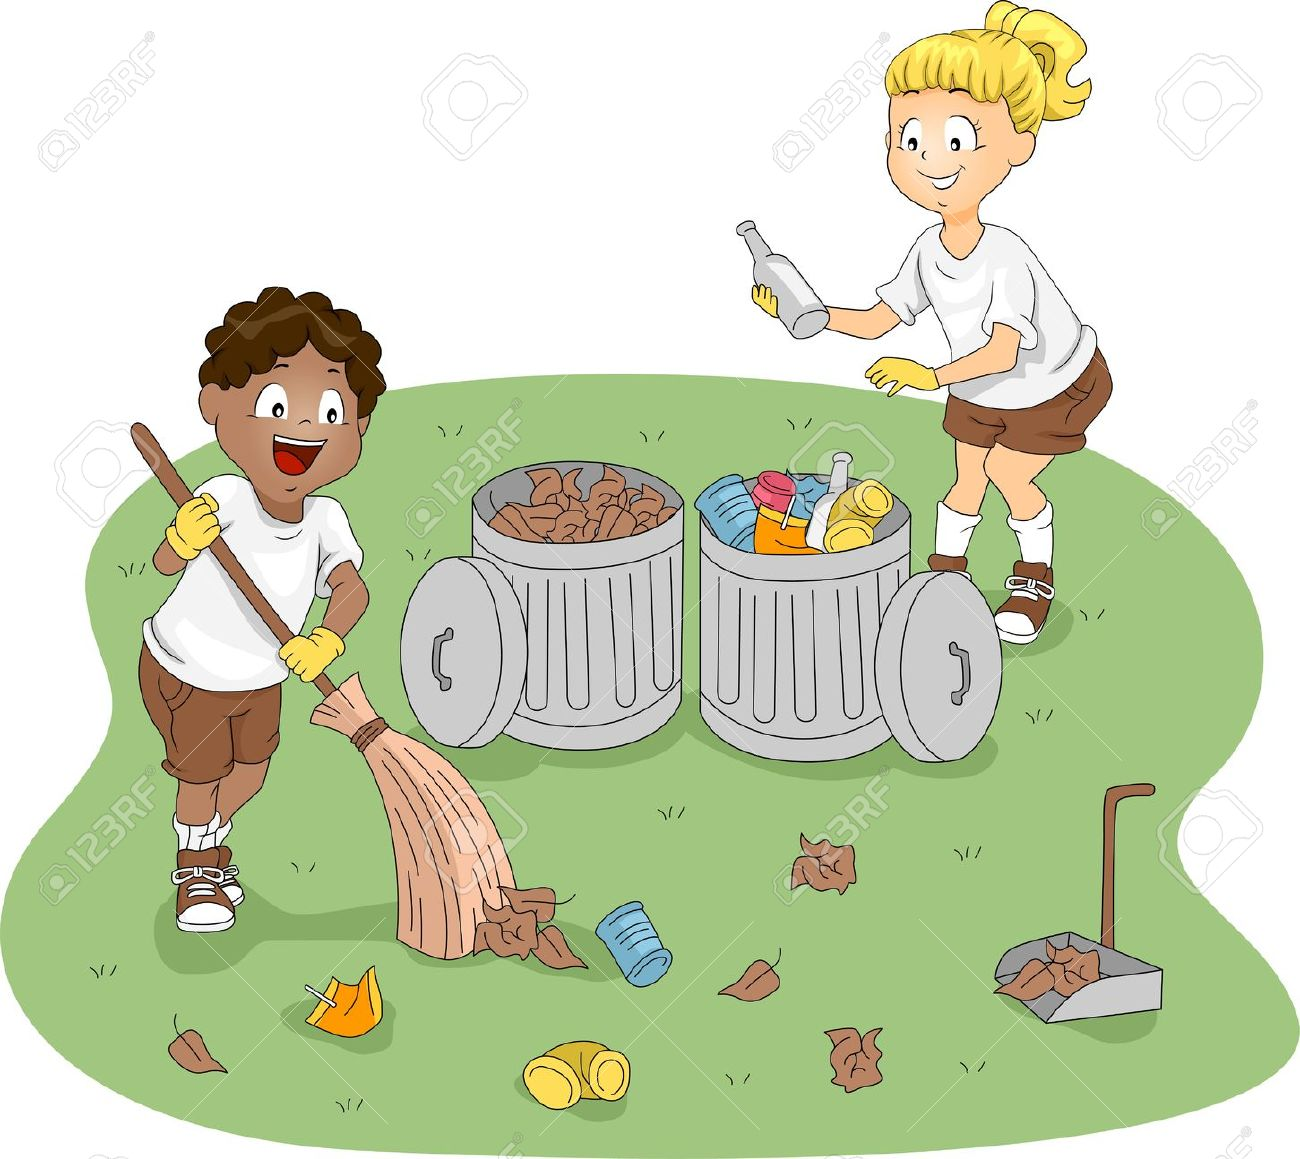 Cleaning with kids clipart image Children cleaning clipart - ClipartFest image